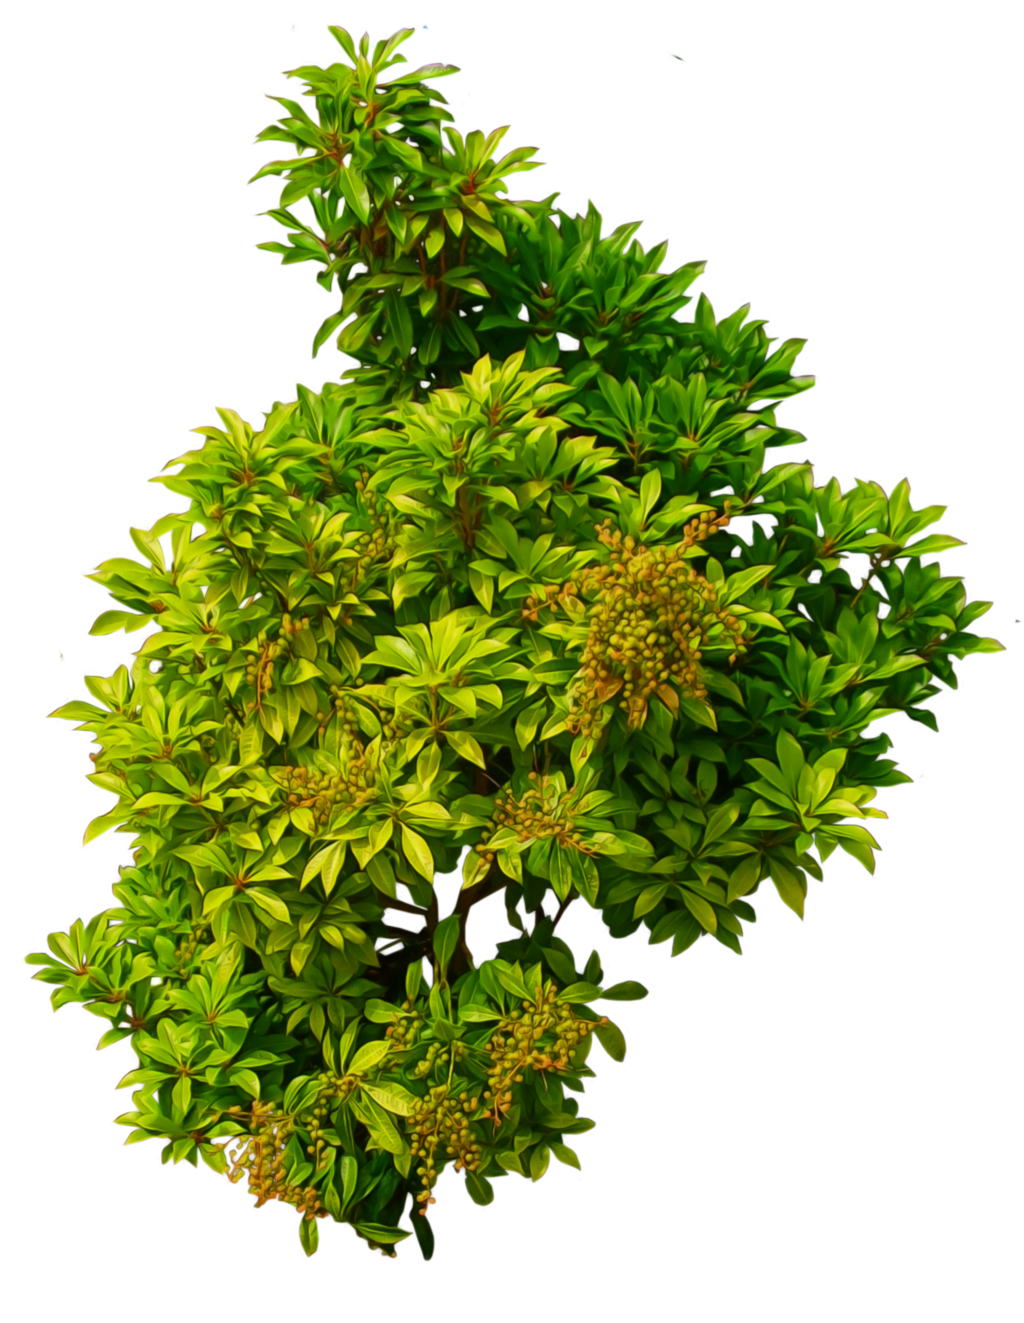 png freeuse Shrub png by alz. Vector bushes shrubbery